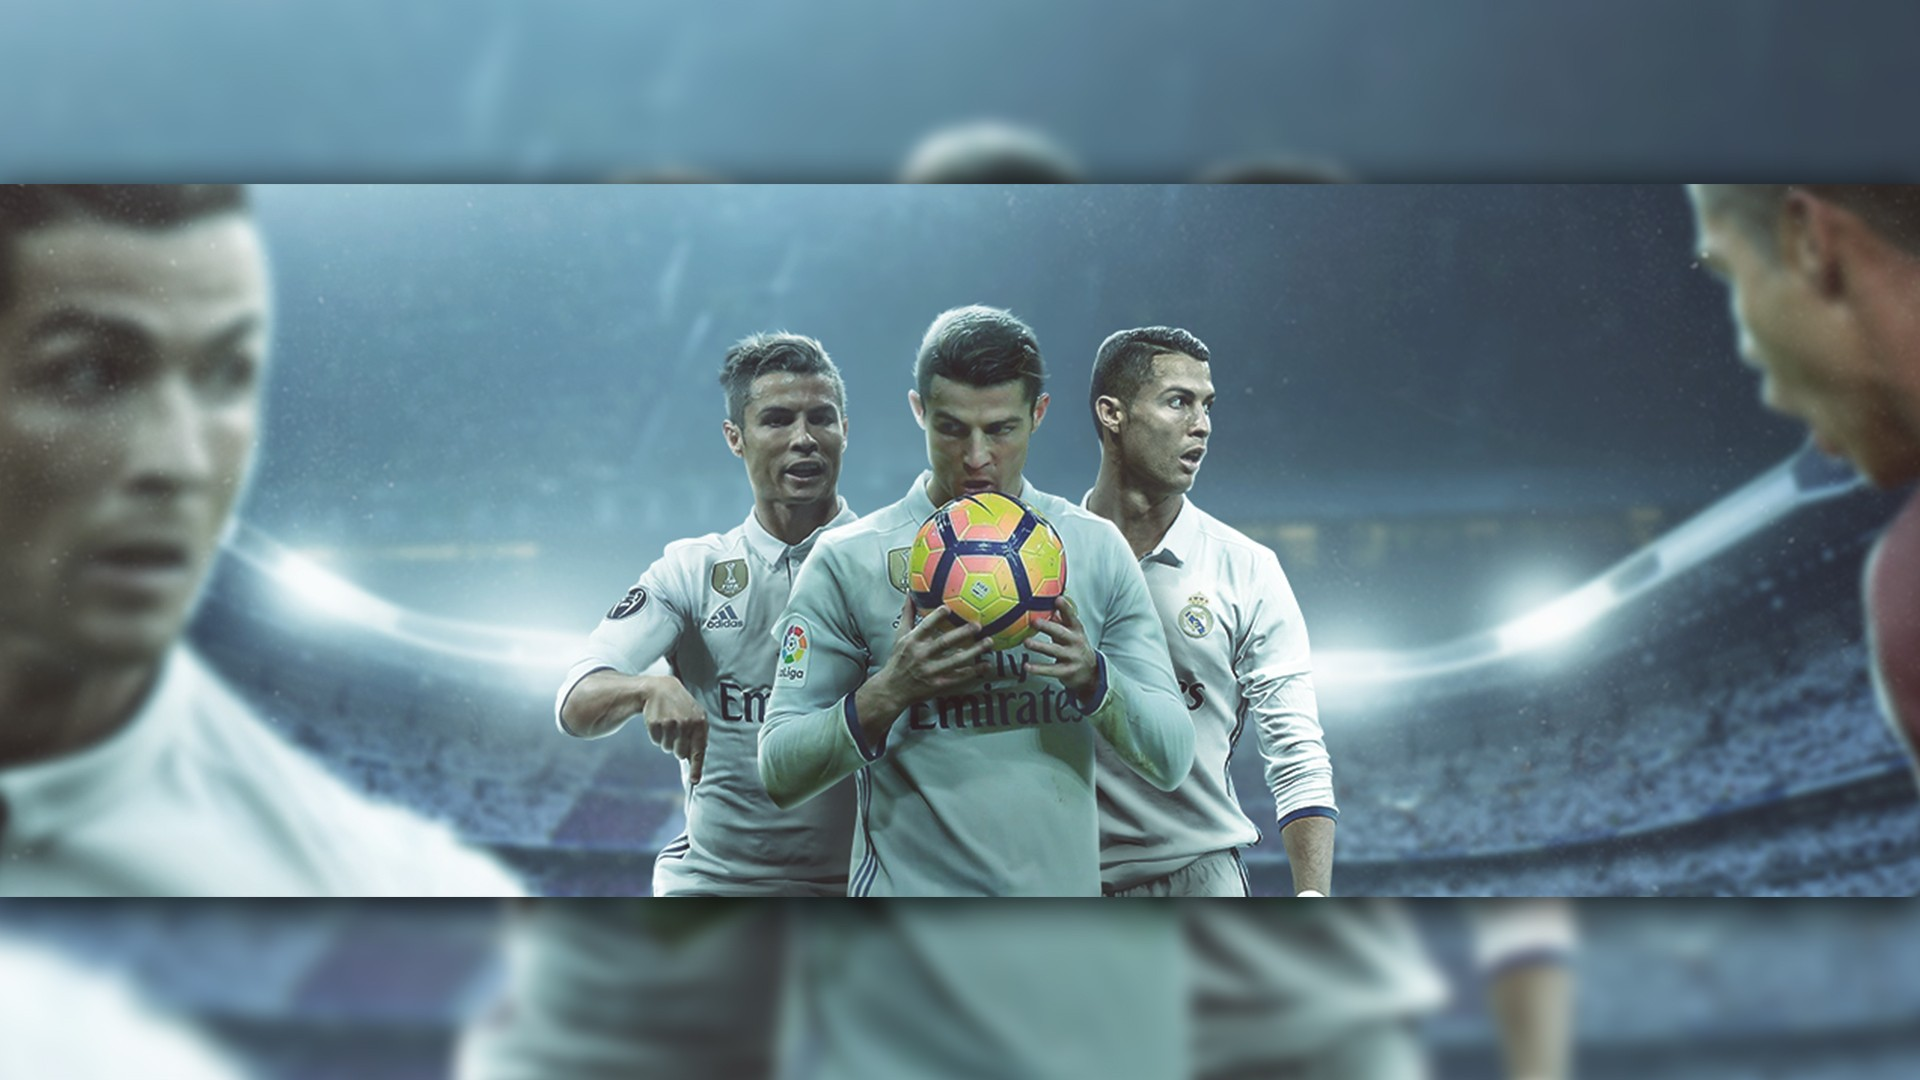 Cr7 Wallpaper Iphone X Cristiano Ronaldo Wallpapers Hd Wallpapers Id 23752